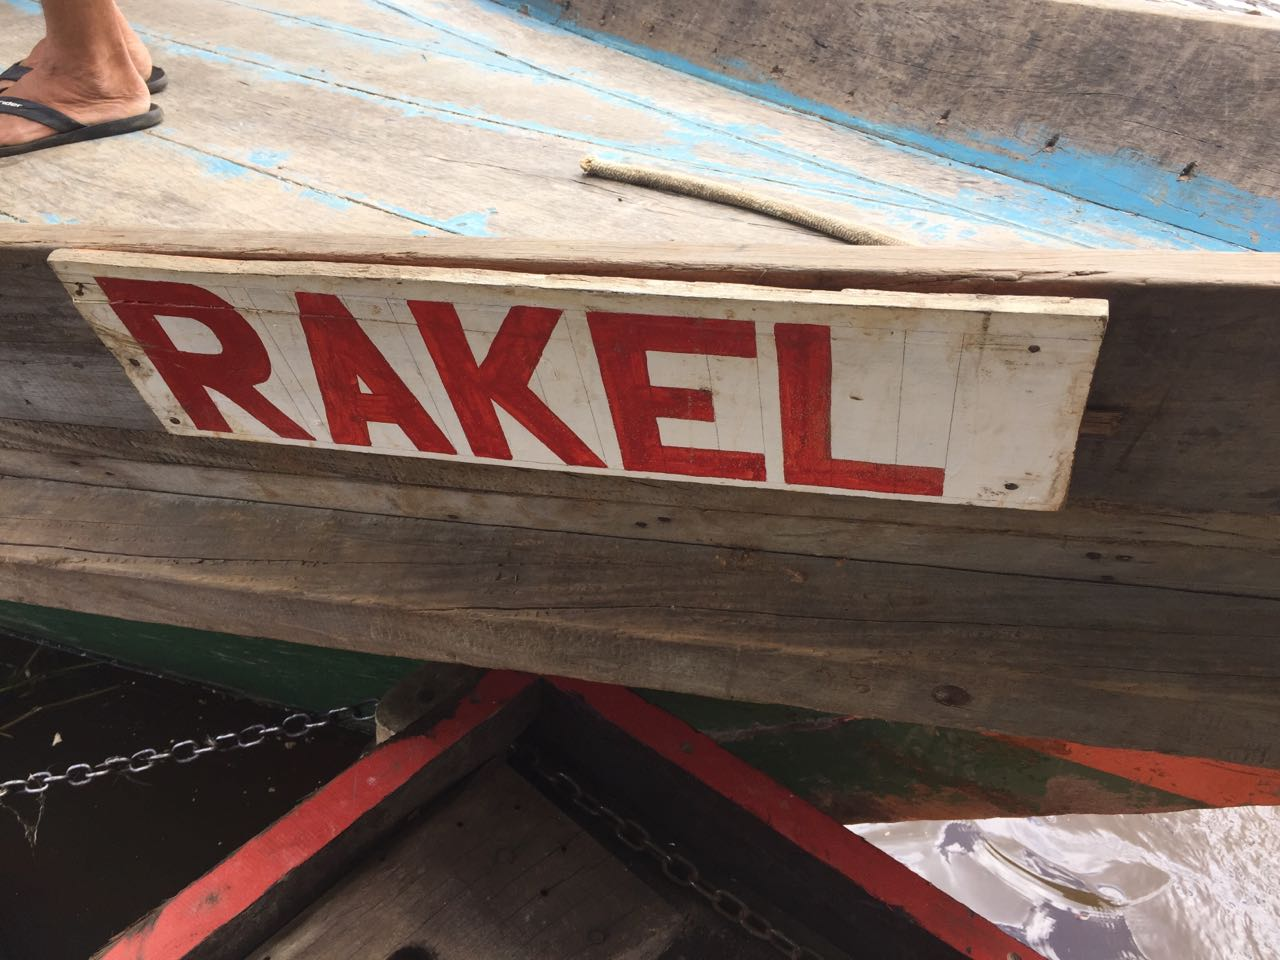 Our supply boat, the Rakel